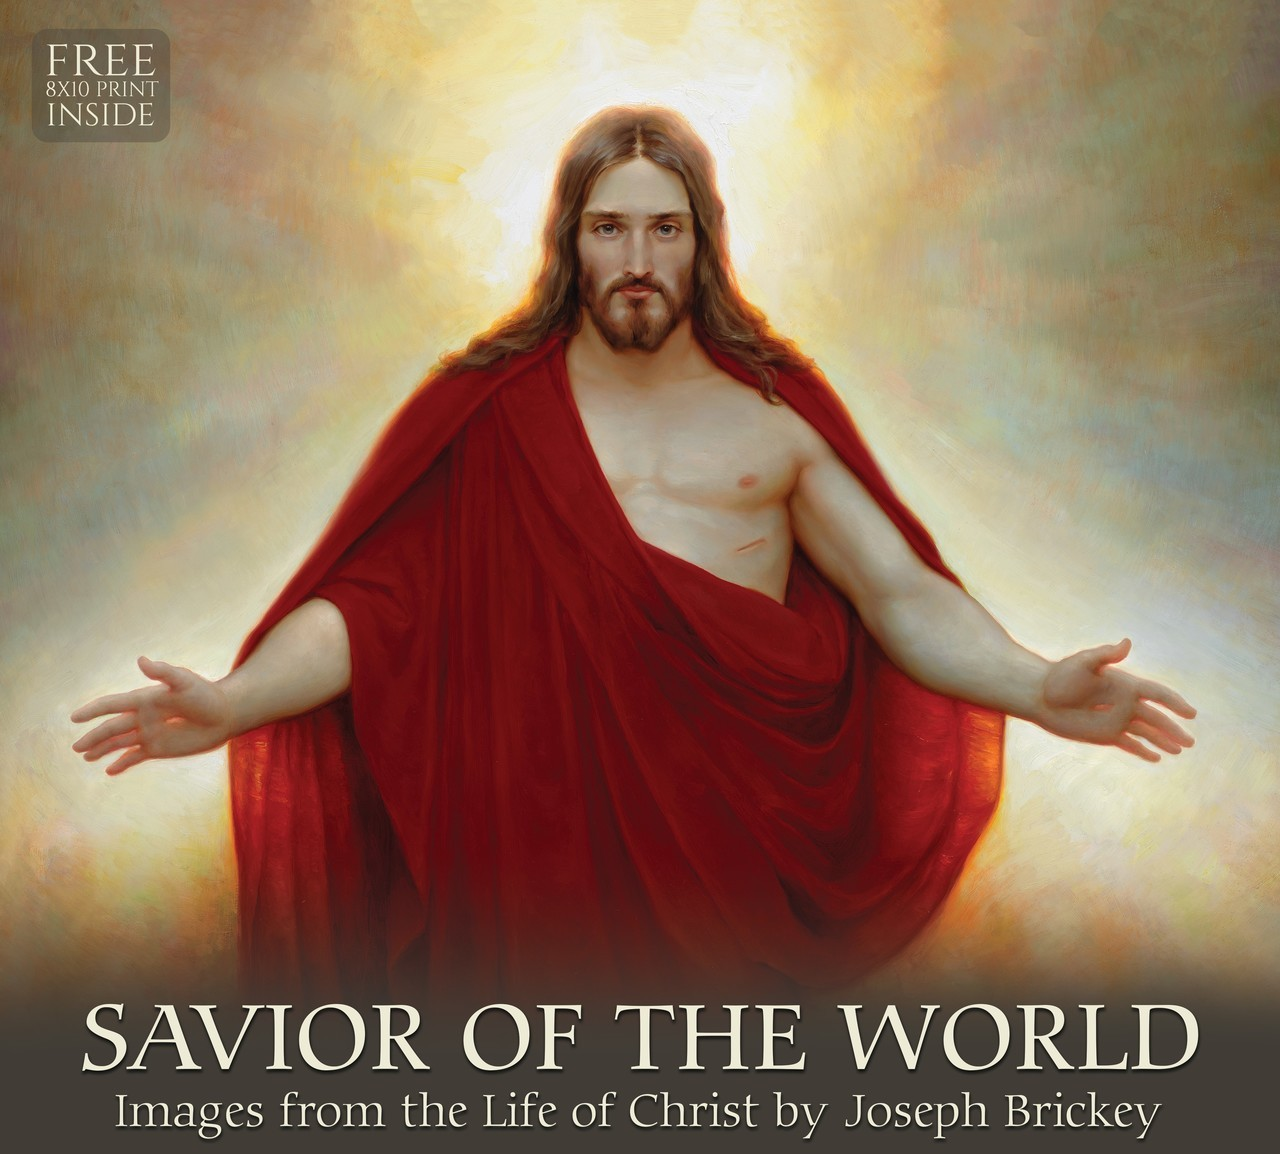 AF - Calendar - 2019 Joseph Brickey Calendar - Savior of the World<BR>2019年 ジョセフ・ブリッキー カレンダー Savior of the World 【壁掛け】